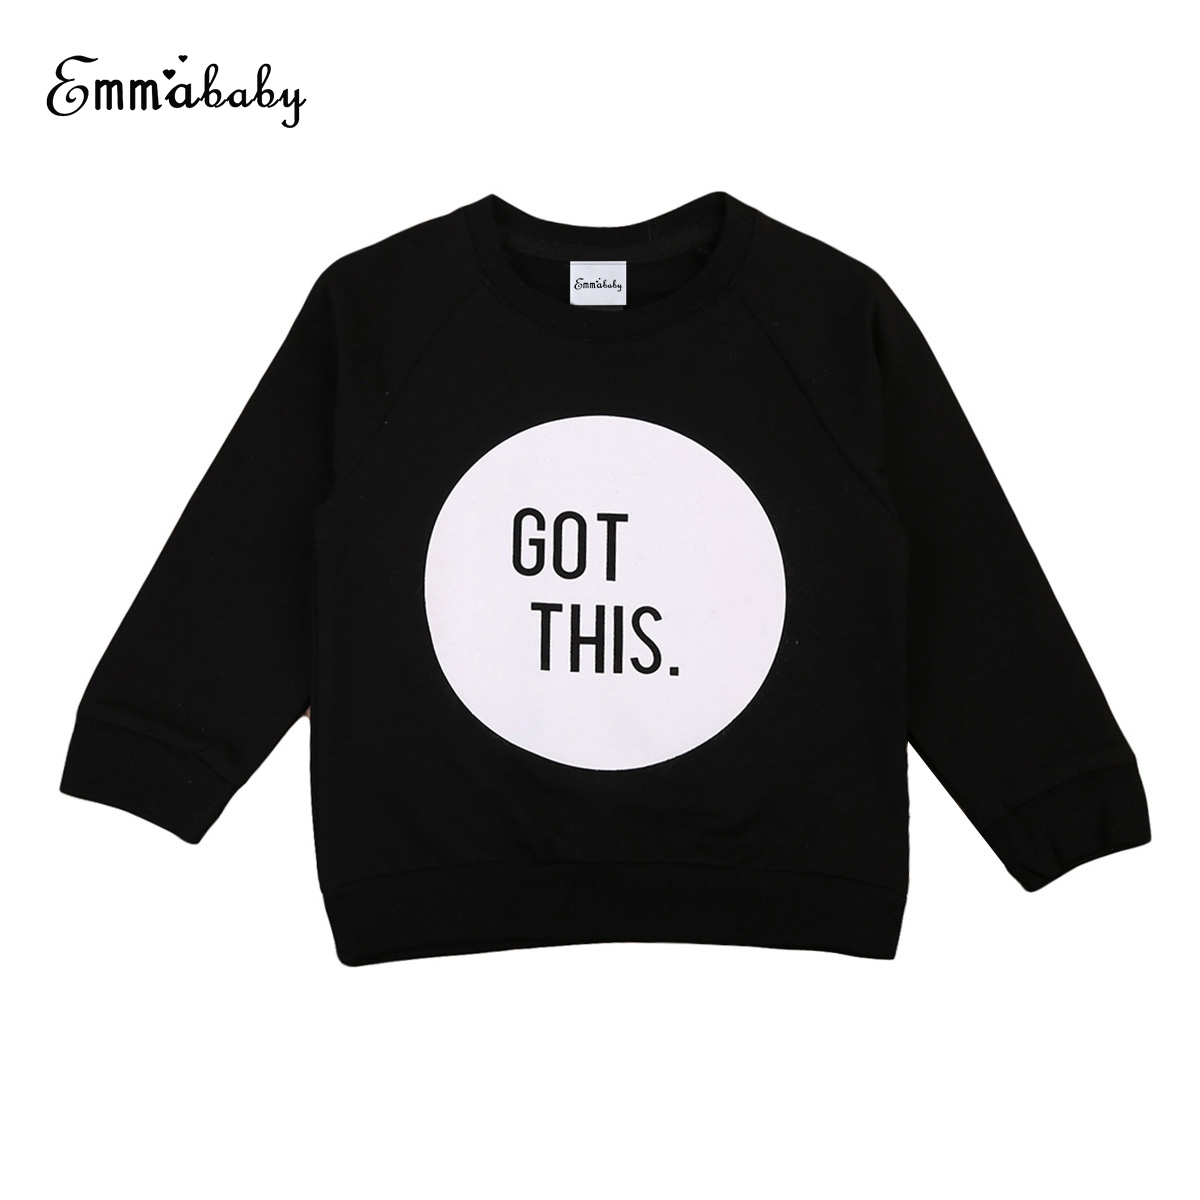 2018 Autumn Clothing Toddler Baby Boys Long Sleeve Sweatshirt Black Grey t Shirt Girls Shirts Warm Hoodies Clothes Tops 2018 child cartoon sweatshirt hoodies for girls long sleeve t shirt for boys baby girls clothes spring sport t shirts boys